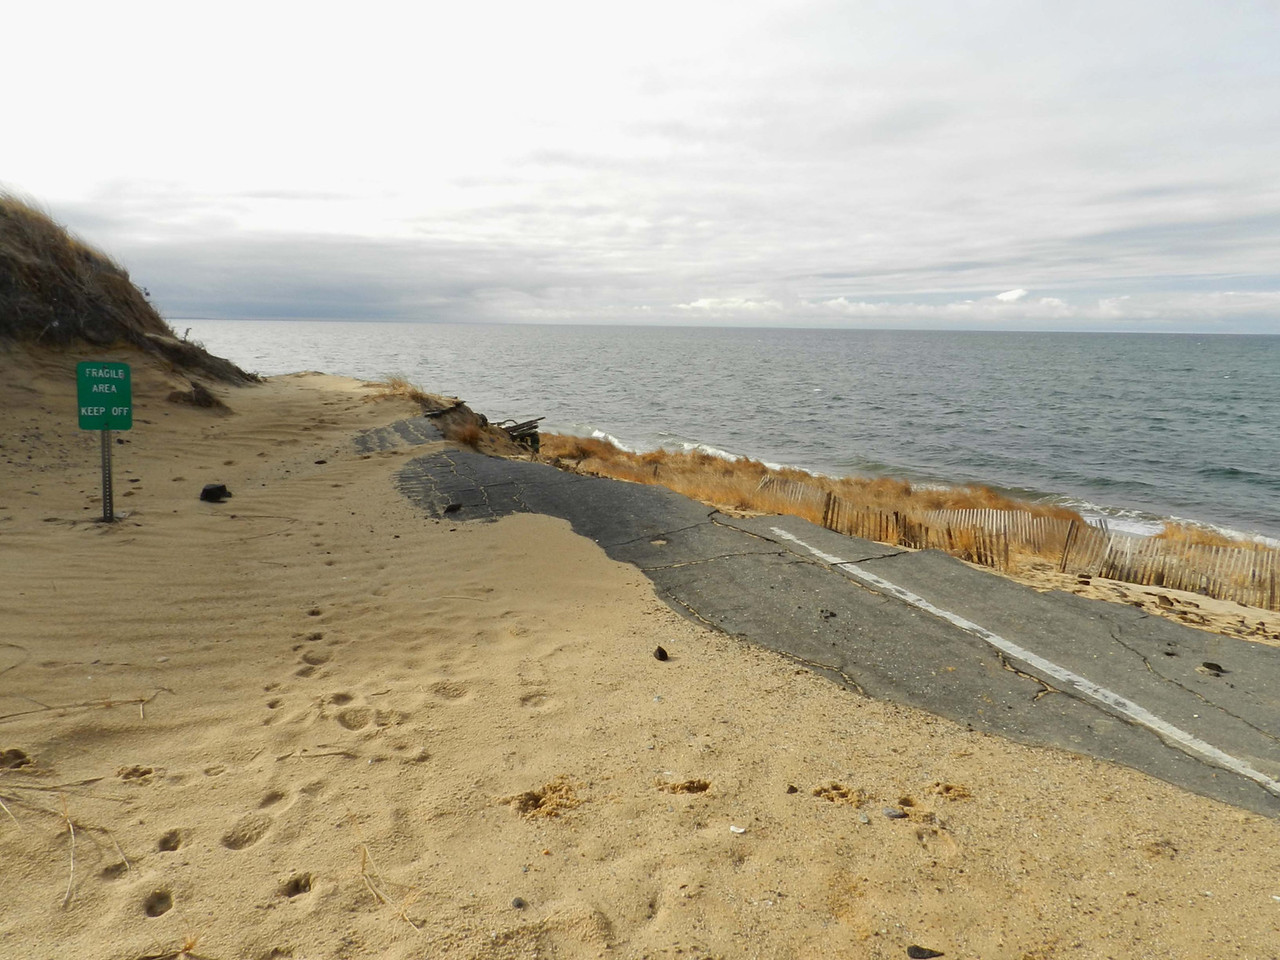 erosion -- Sunset Point was once a parking lot